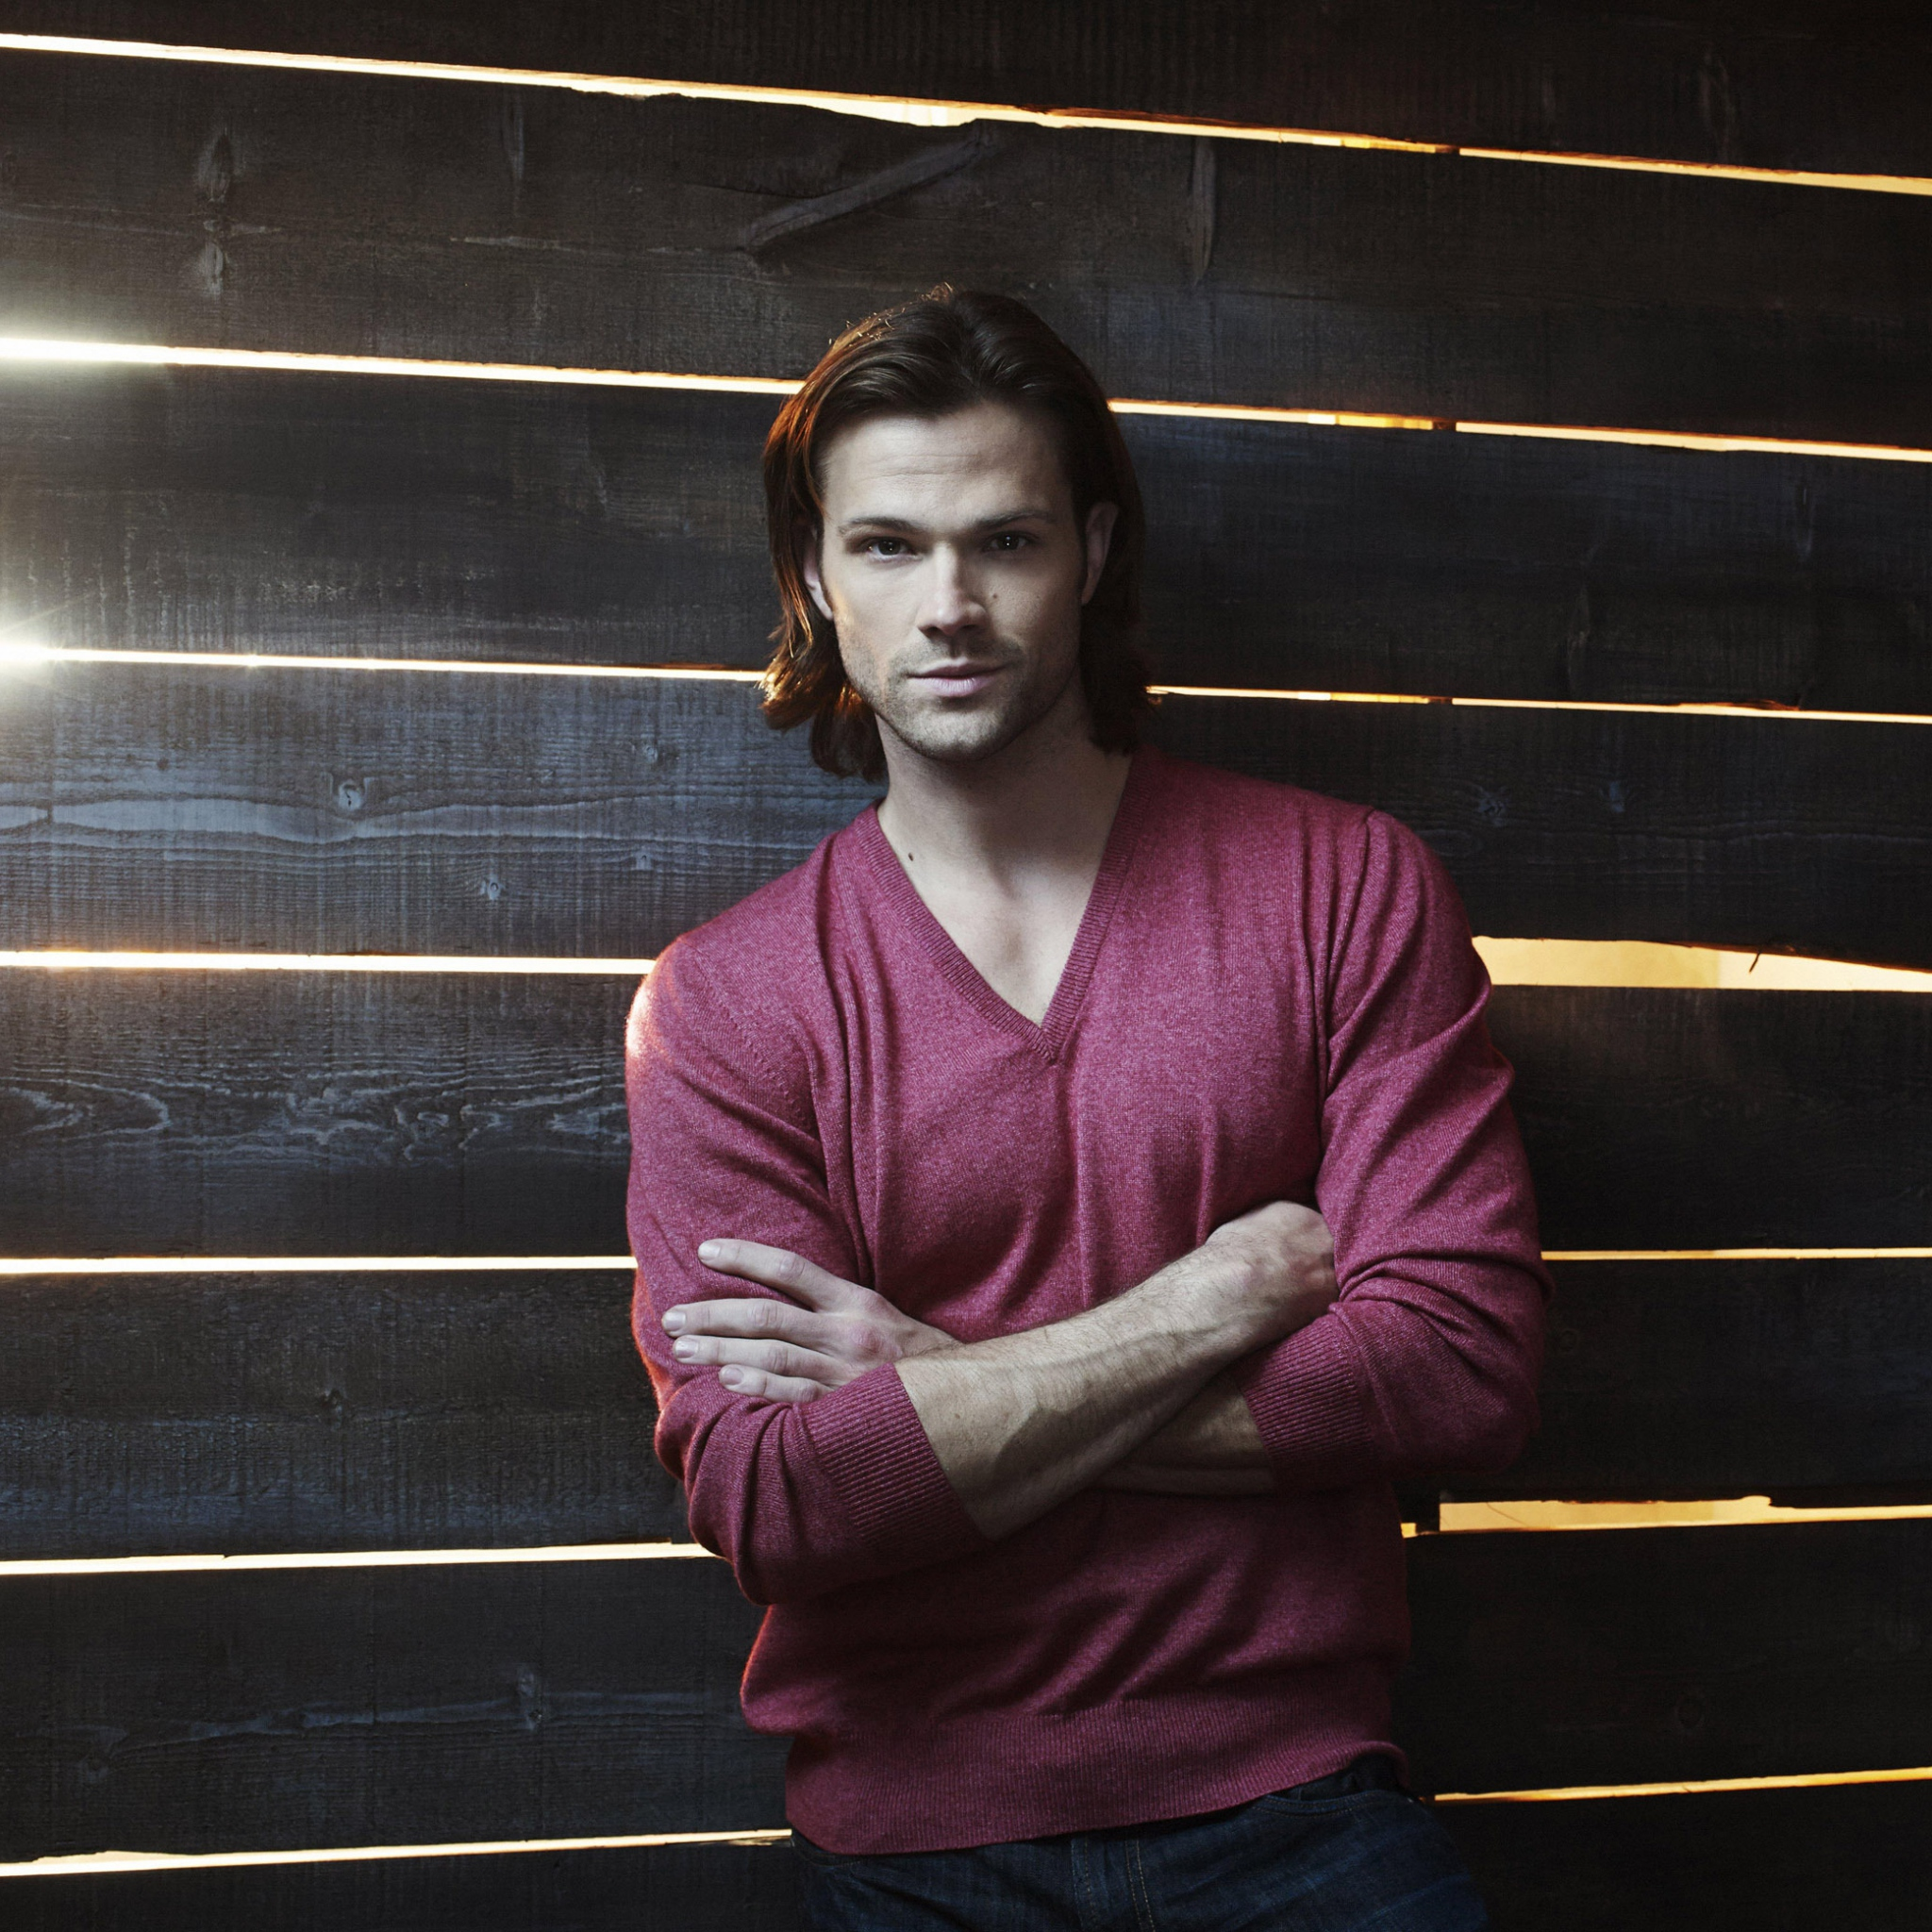 jared padalecki mobile wallpaper 54667